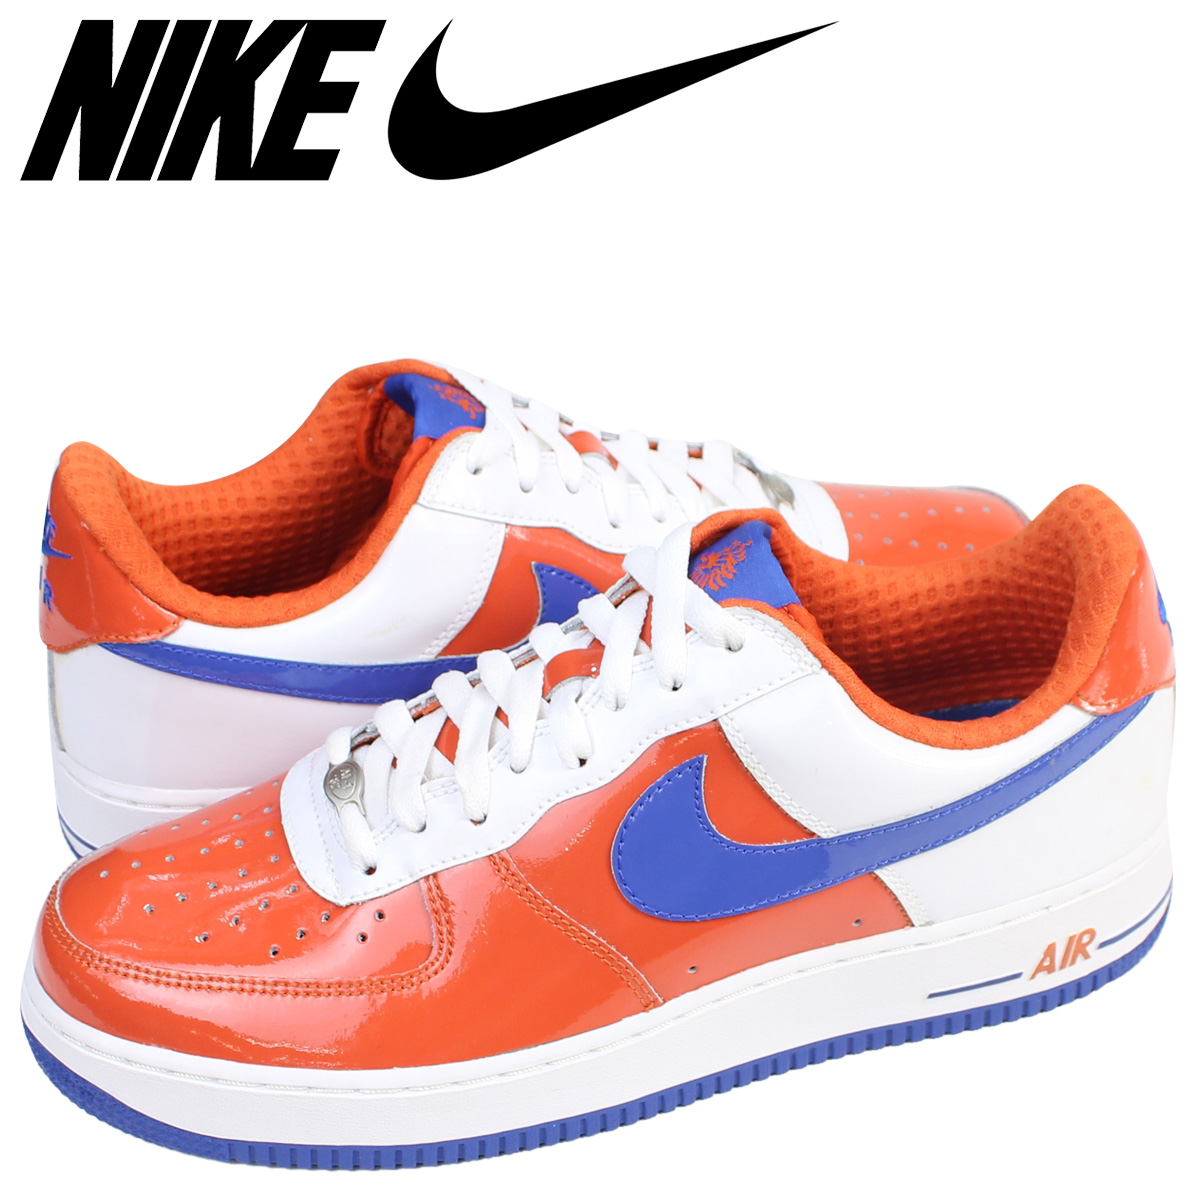 best value d5255 dbcc5 NIKE Nike air force 1 sneakers AIR FORCE 1 LOW PREMIUM WORLD CUP HOLLAND  309,096-811 low men shoes orange